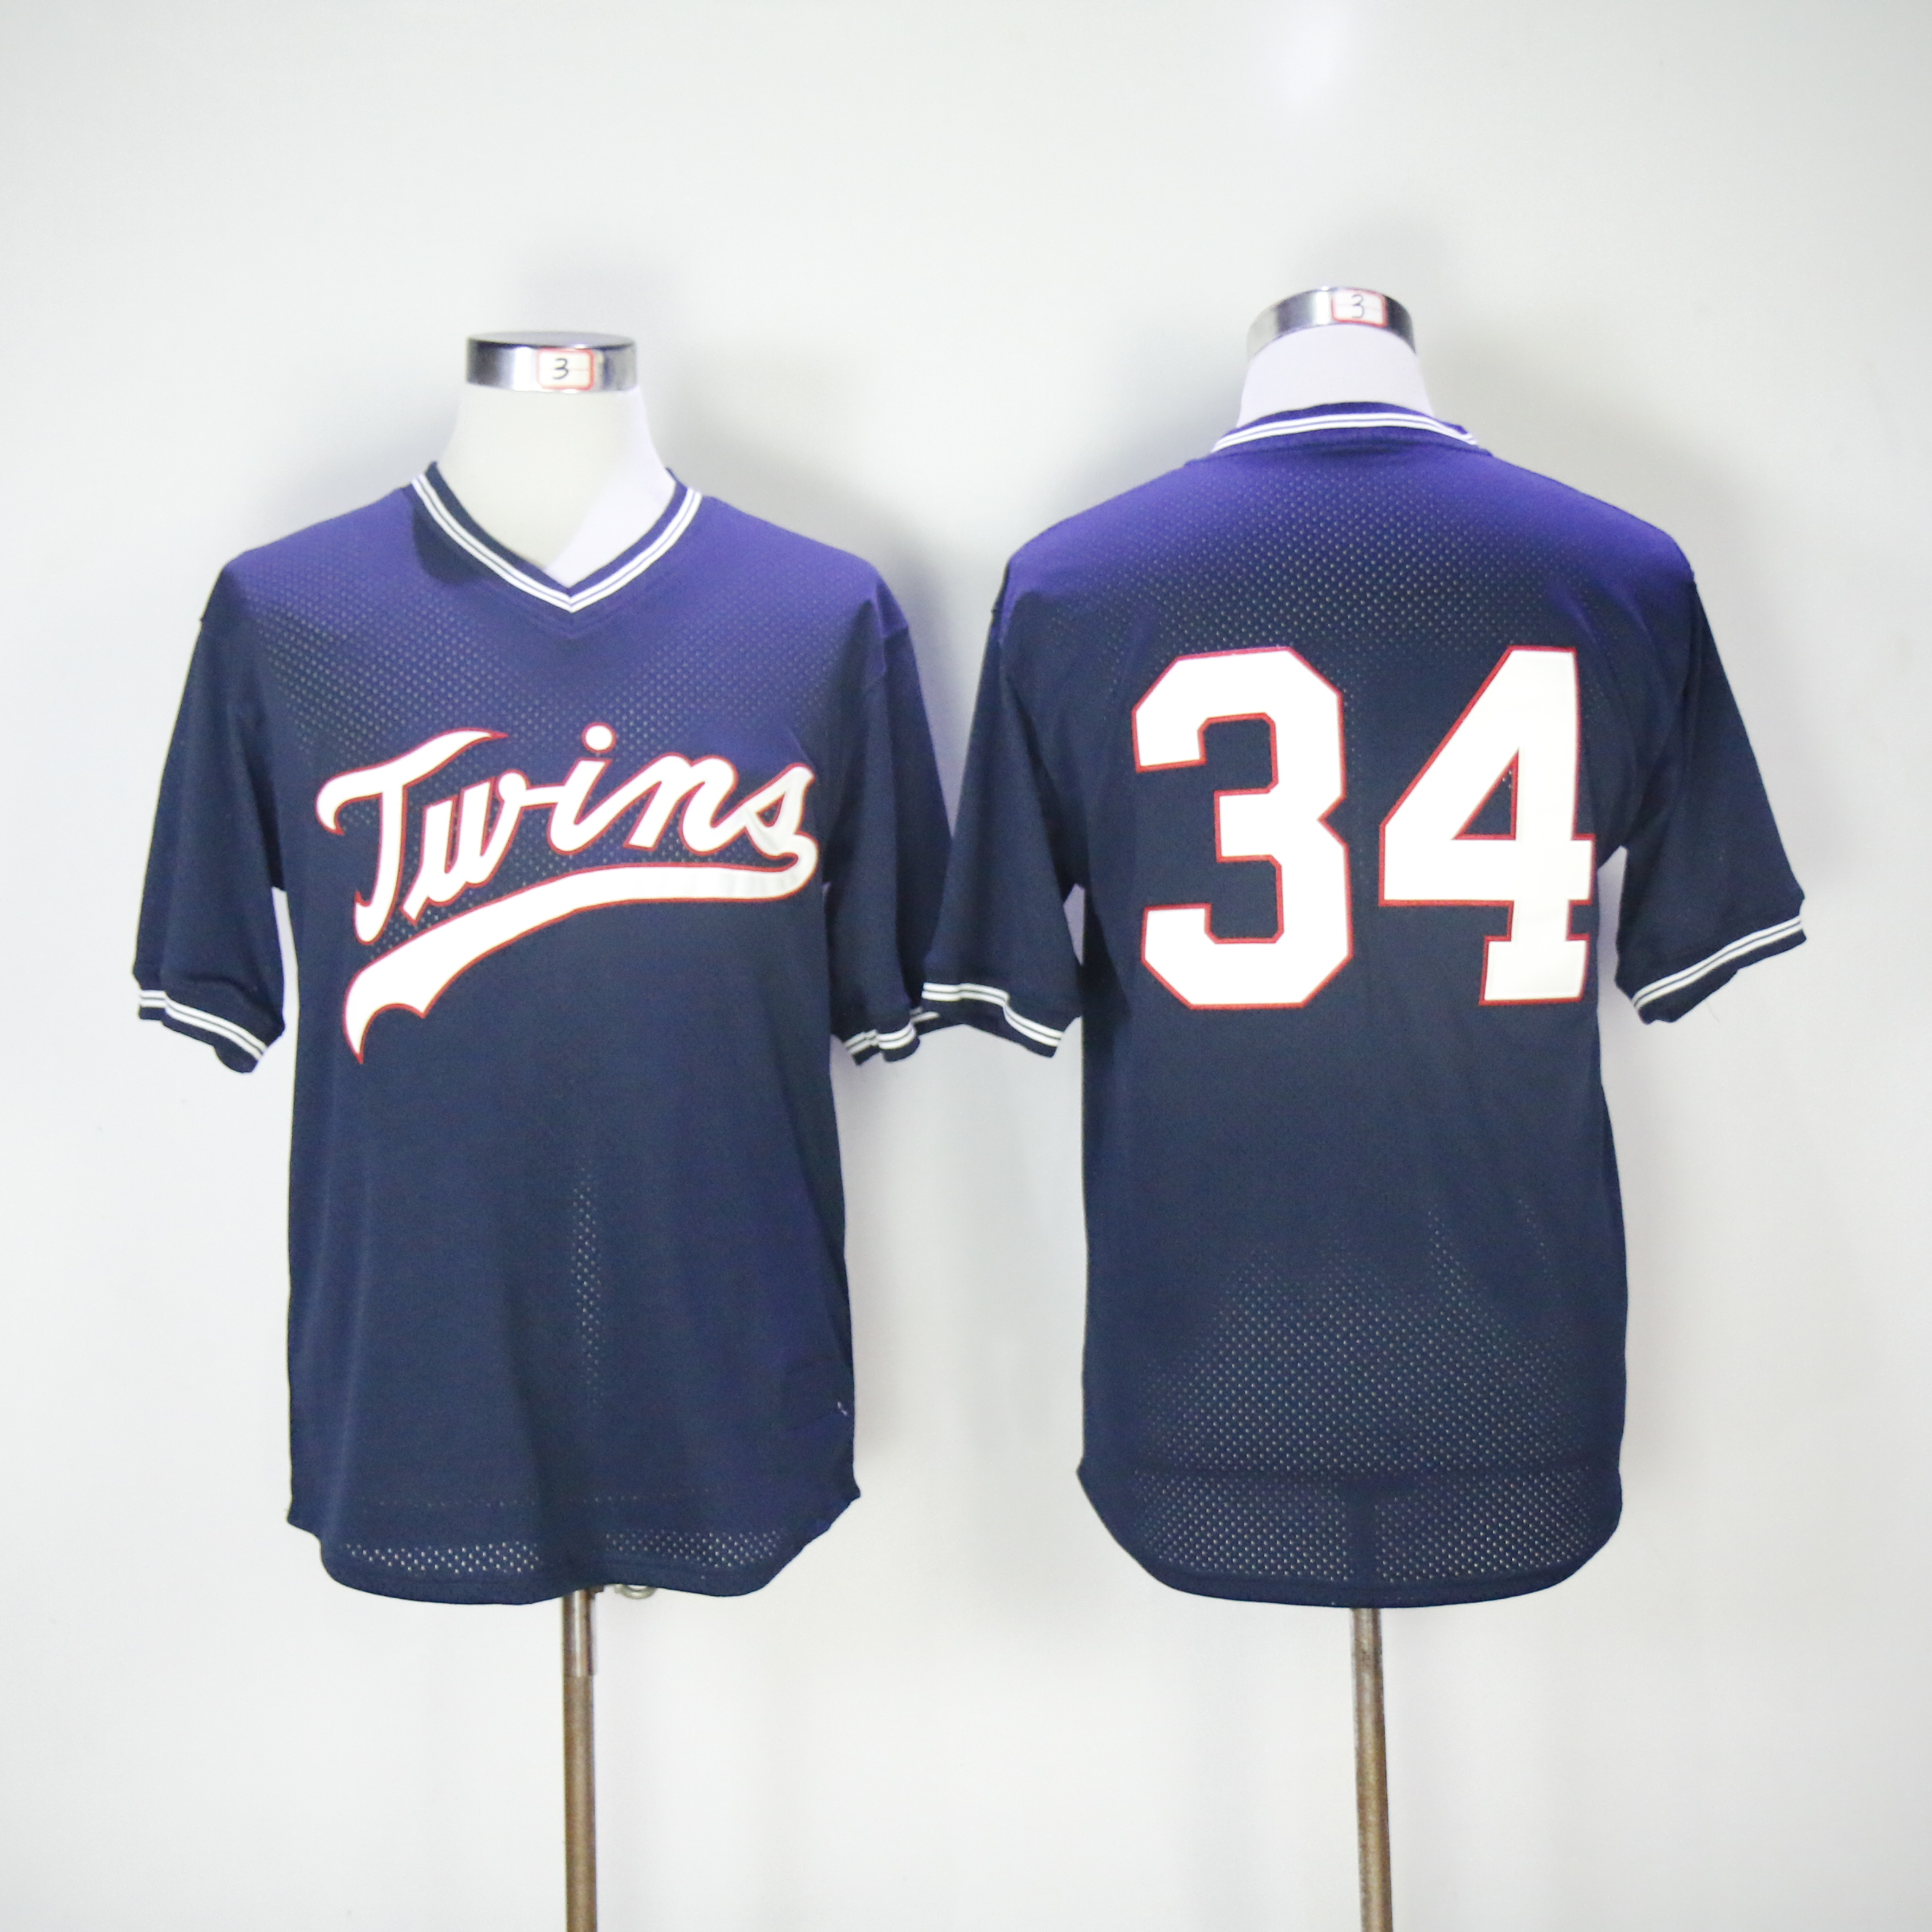 Men Minnesota Twins 34 Puckett Blue Throwback MLB Jerseys